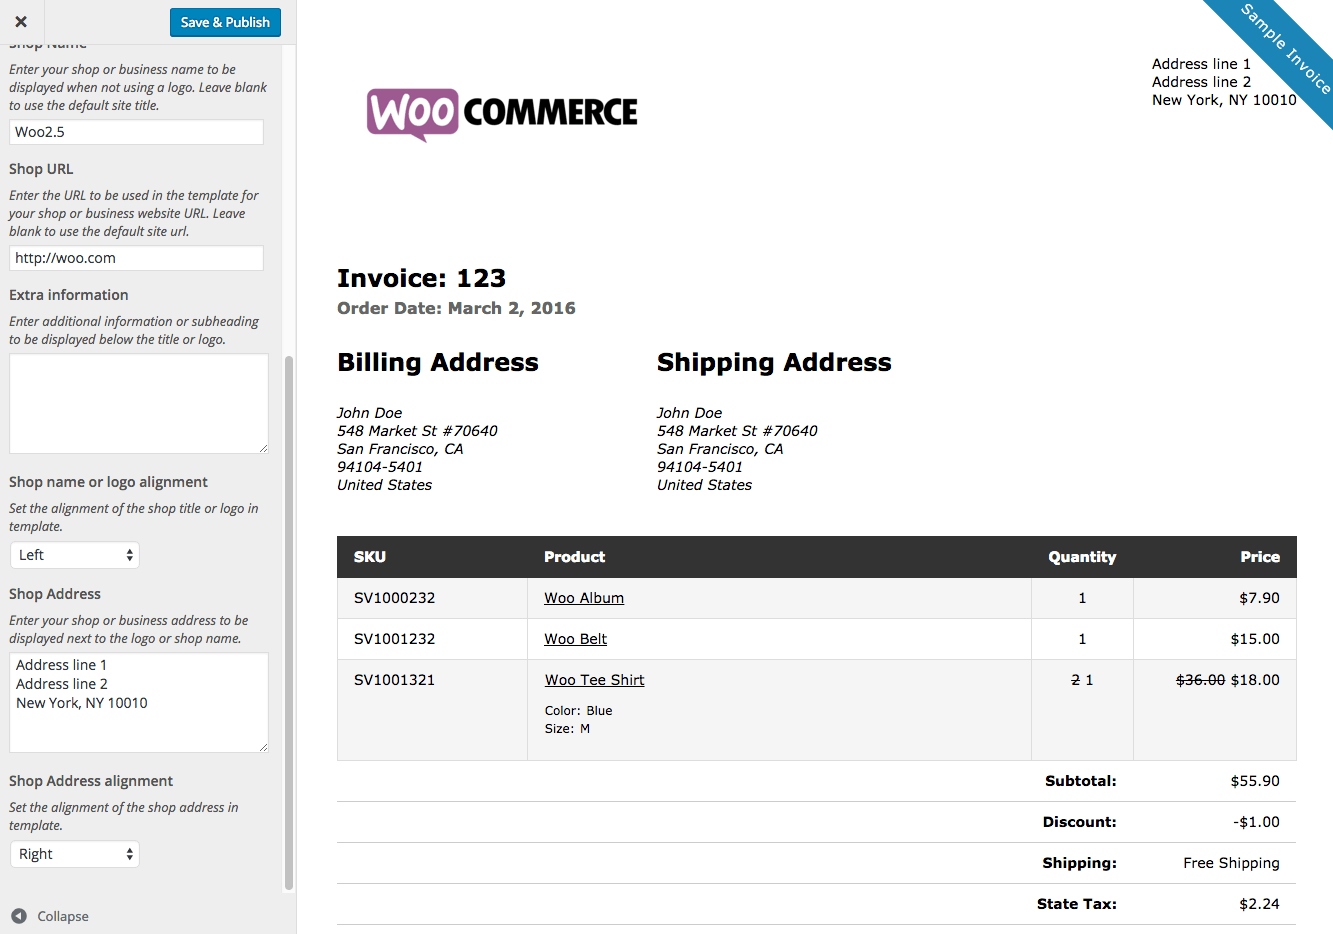 Aldiablosus  Marvellous Woocommerce Print Invoices Amp Packing Lists  Woocommerce Docs With Marvelous Woocommerce Print Invoices  Packing Lists Customizer With Appealing Asda Check Your Receipt Also Petty Cash Receipt Template Free In Addition Ipad Compatible Receipt Printer And Receipt Forms Free Download As Well As Mseb Online Bill Payment Receipt Additionally Medicare Receipt From Docswoocommercecom With Aldiablosus  Marvelous Woocommerce Print Invoices Amp Packing Lists  Woocommerce Docs With Appealing Woocommerce Print Invoices  Packing Lists Customizer And Marvellous Asda Check Your Receipt Also Petty Cash Receipt Template Free In Addition Ipad Compatible Receipt Printer From Docswoocommercecom